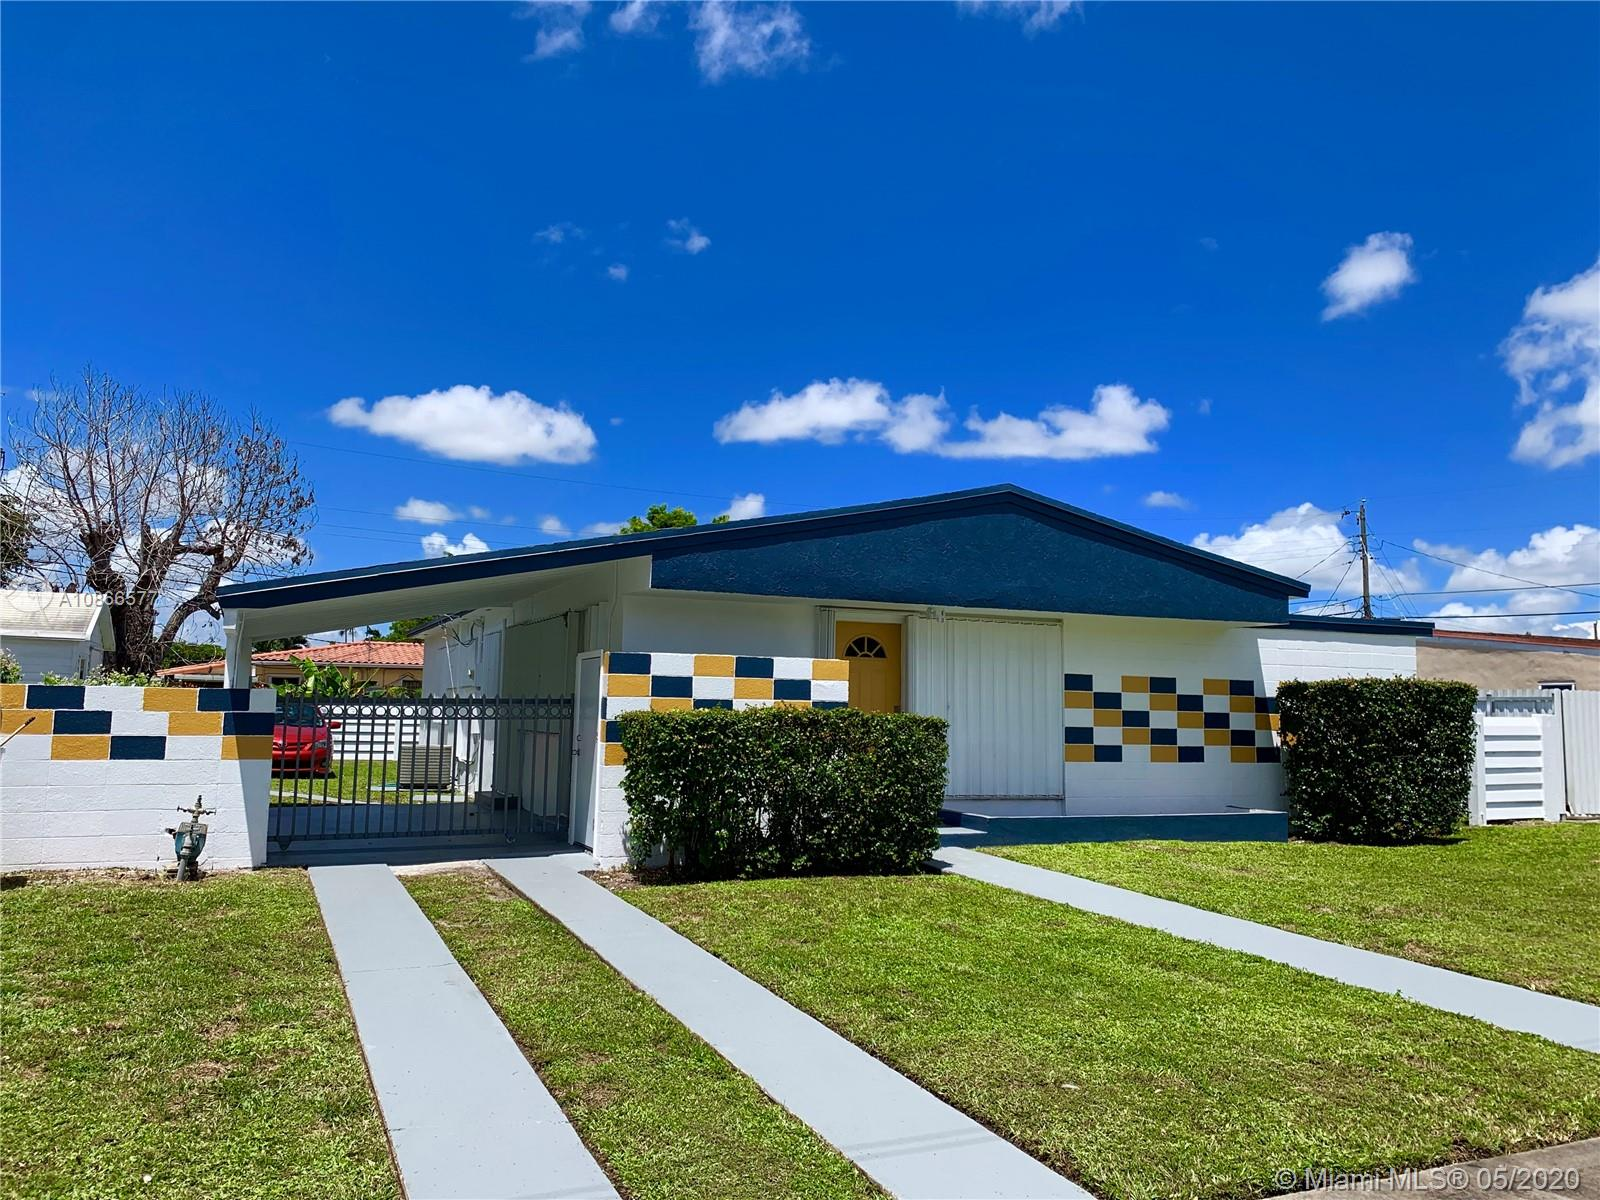 943 W 64th Pl, Hialeah, FL 33012